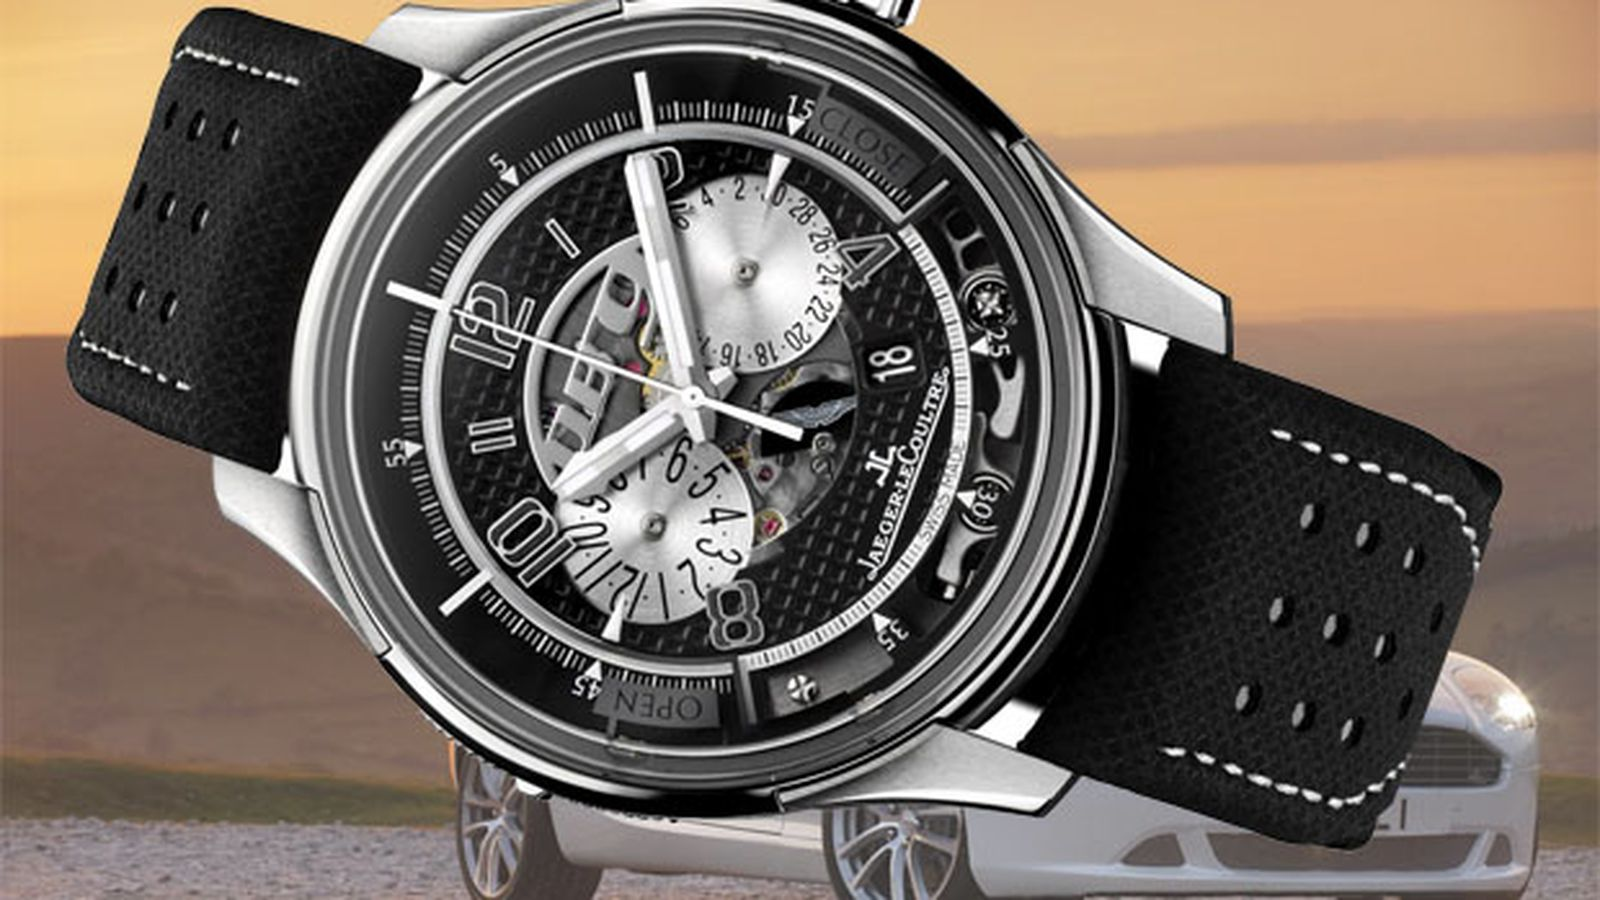 Aston martin AMV OX2 watch